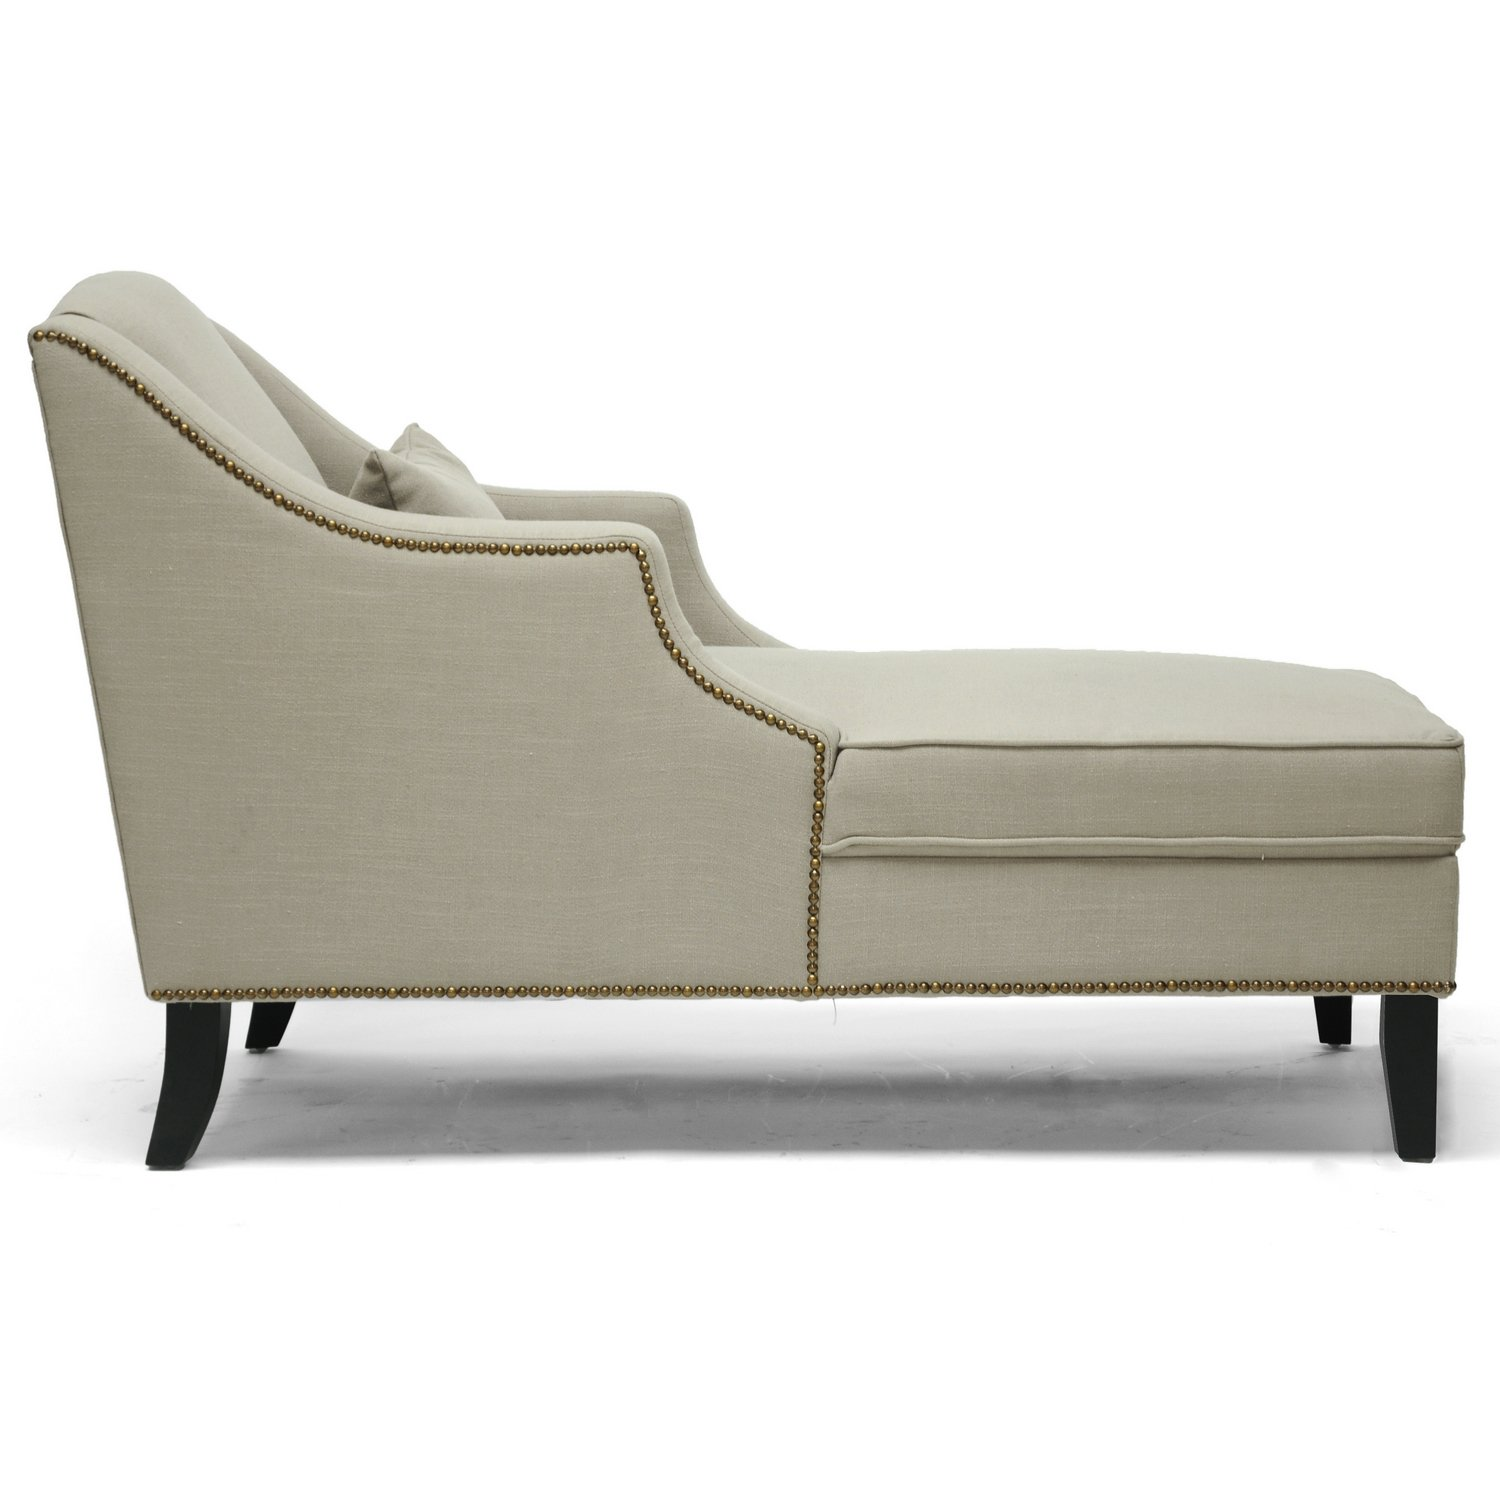 Amazon.com: Baxton Studio Asteria Putty Linen Modern Chaise Lounge ...